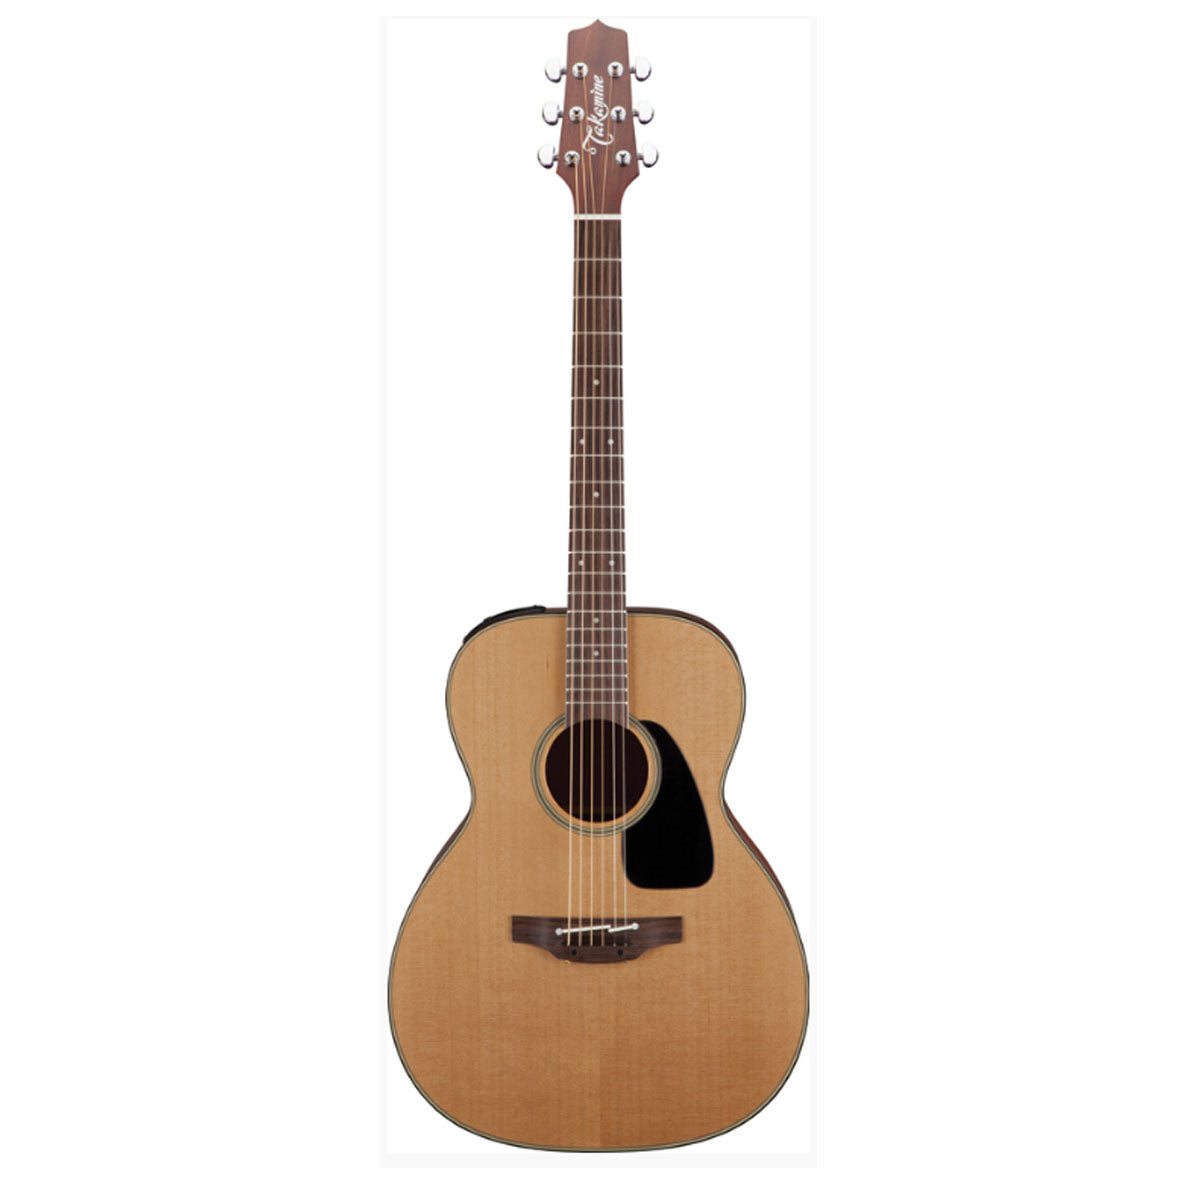 Takamine P1M Pro Series 1 Acoustic Guitar Orchestral Natural w/ Pickup